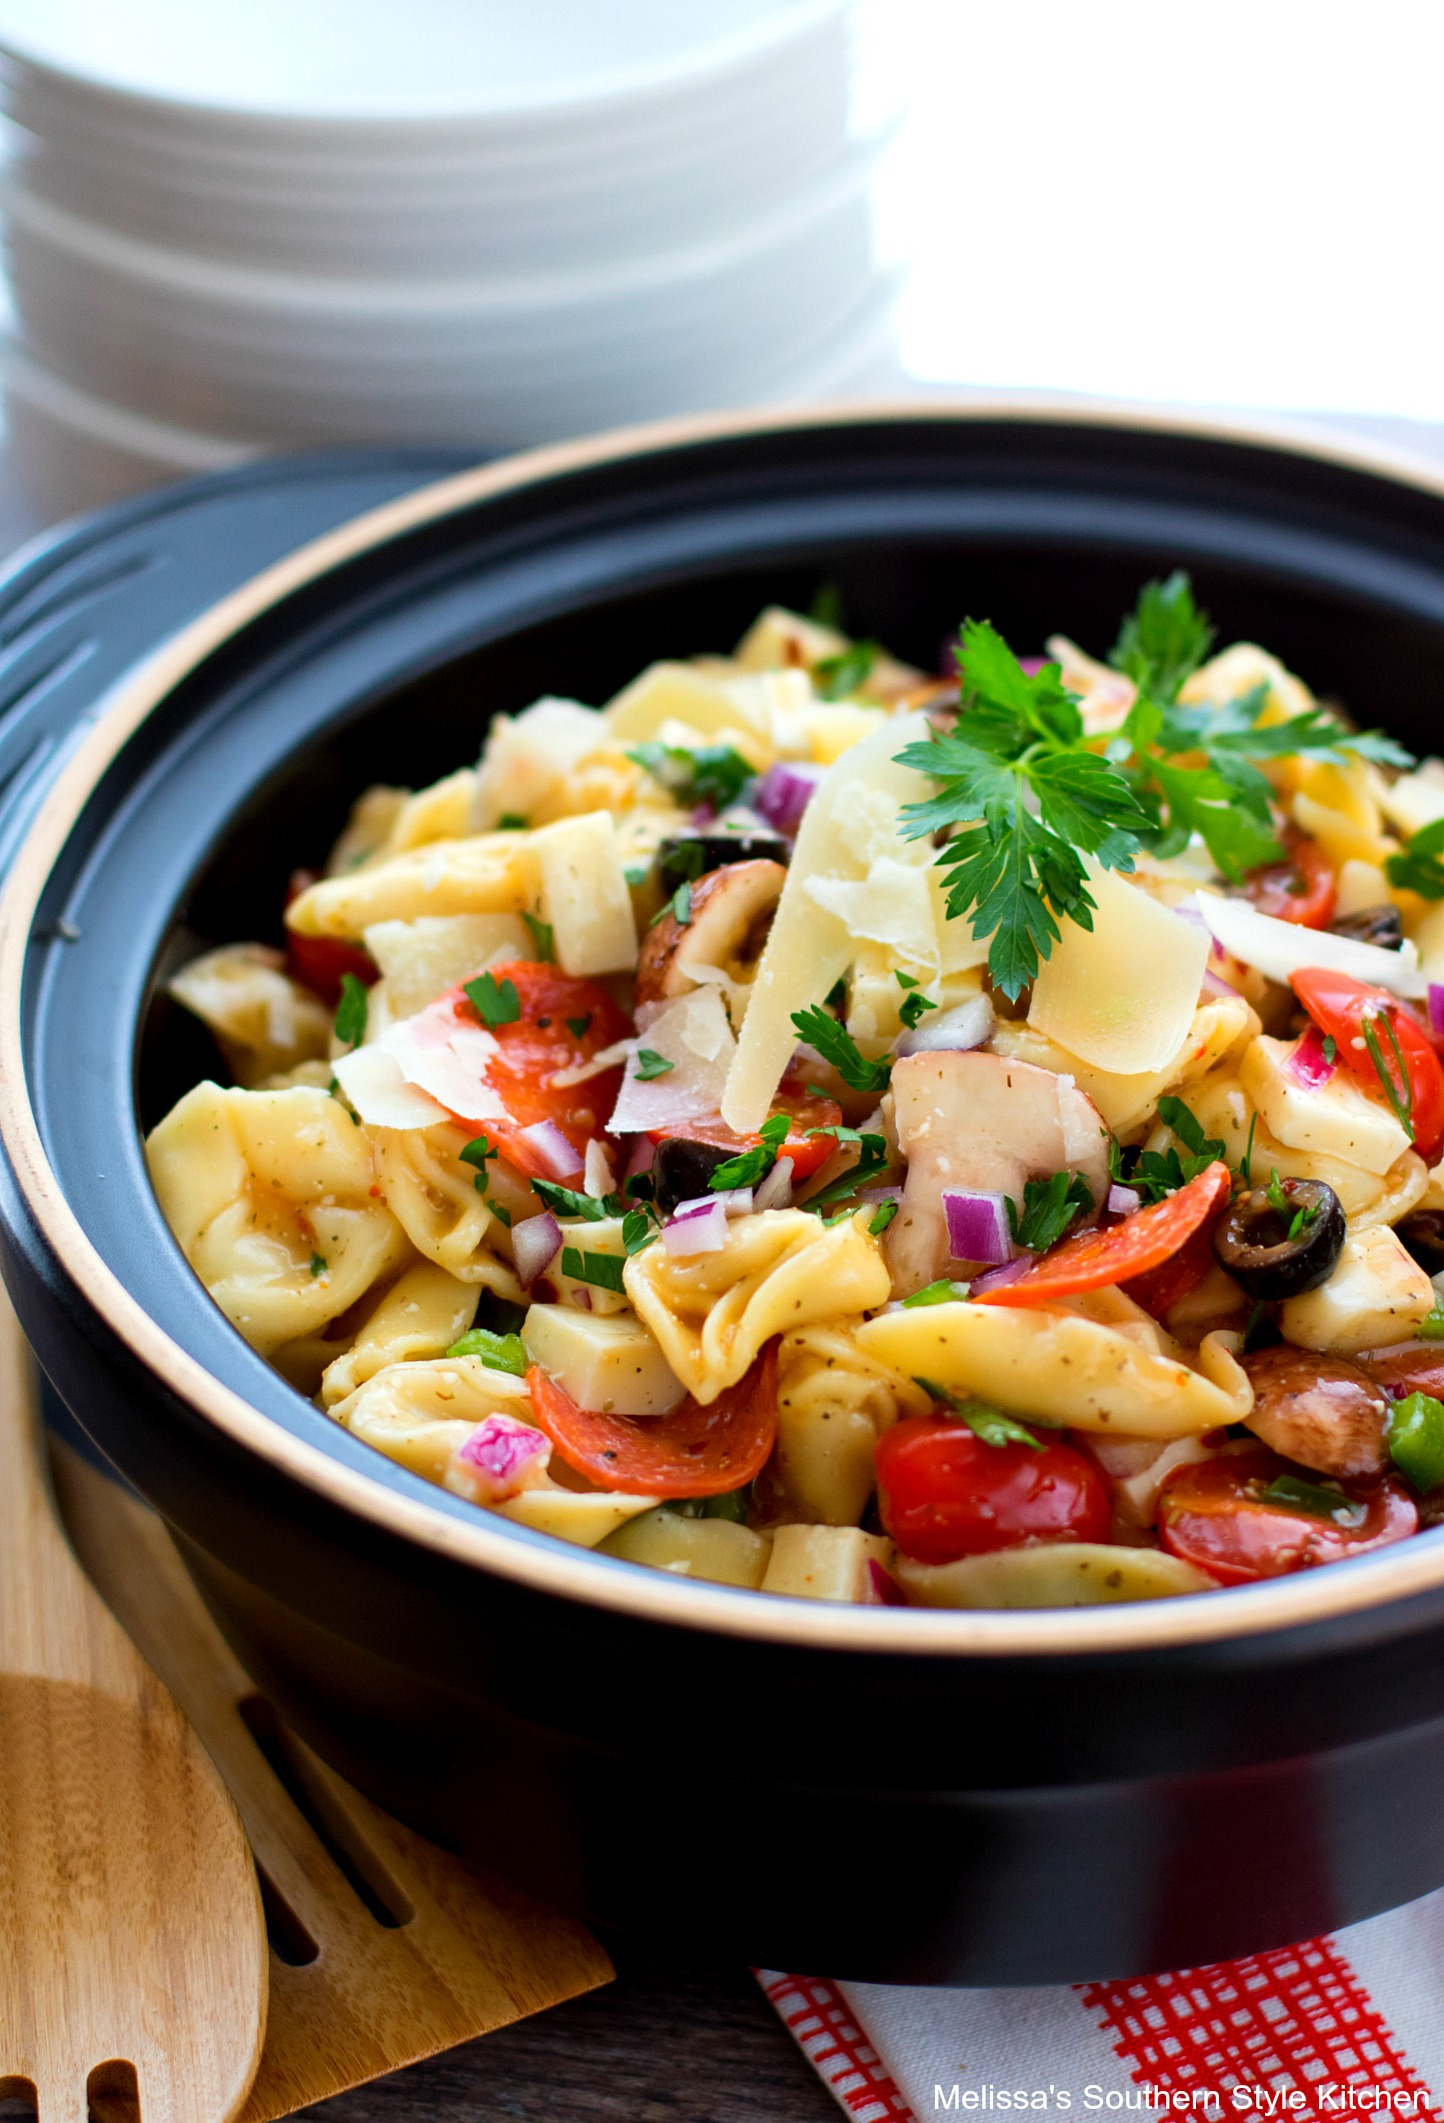 How To Make Supreme Pizza Tortellini Salad